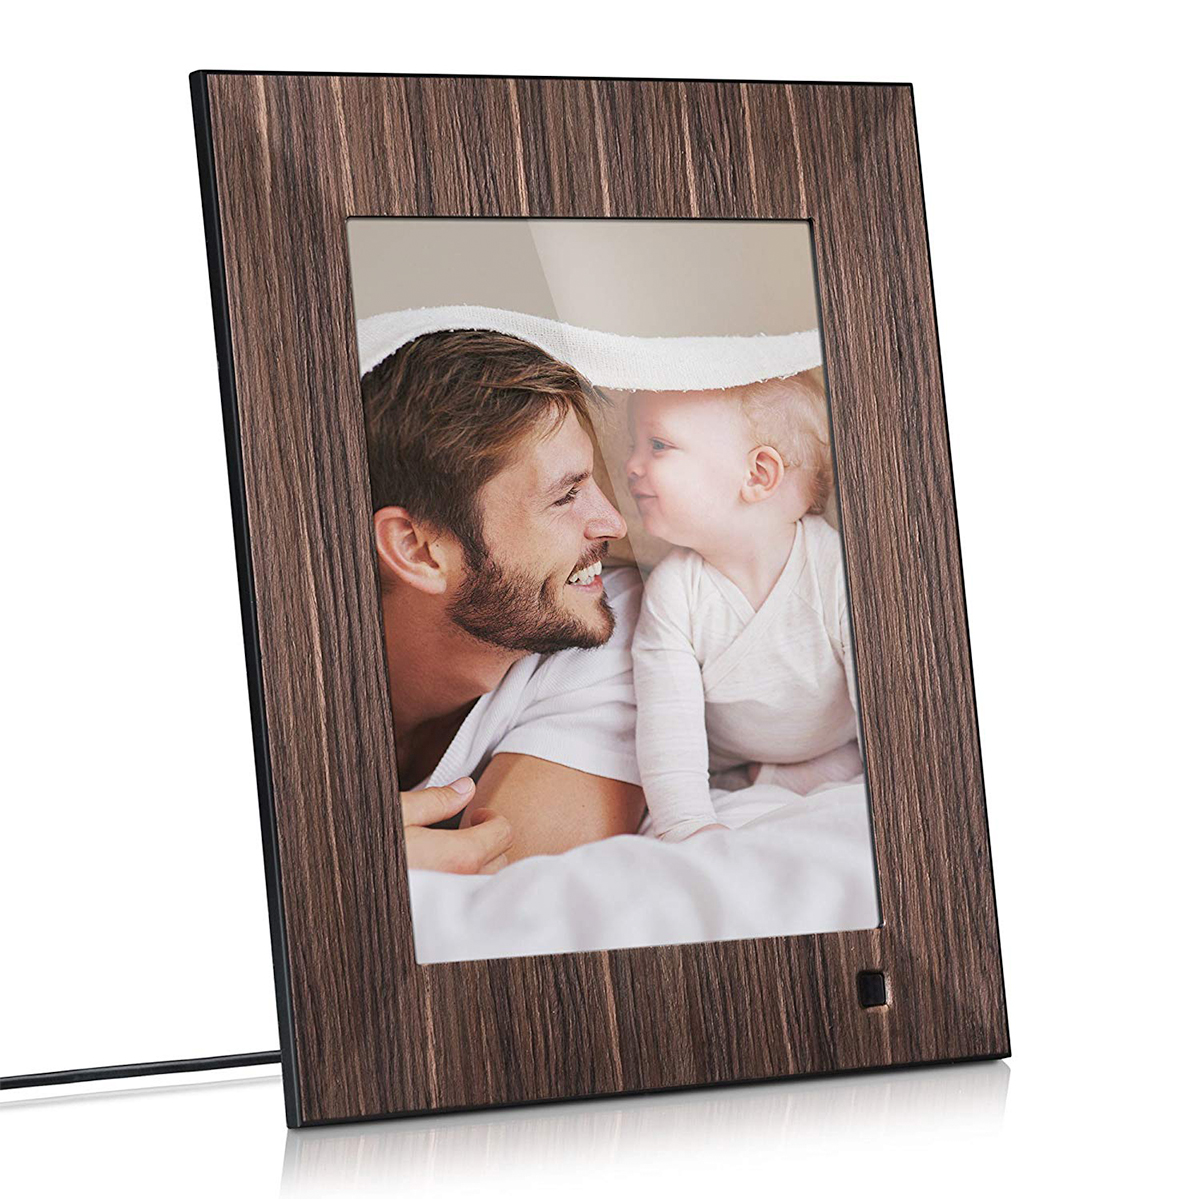 + A digital photo frame - You can opt for a fancy digital frame that comes with Alexa (two gifts in one!) or perhaps a simpler device that uses a USB stick (pictured above). Or maybe these gifts are a bit out of your price range? No worries, a family photo in a nice frame is always a perfect go-to. Bonus points if you paint the frame yourself!(Image | Amazon)